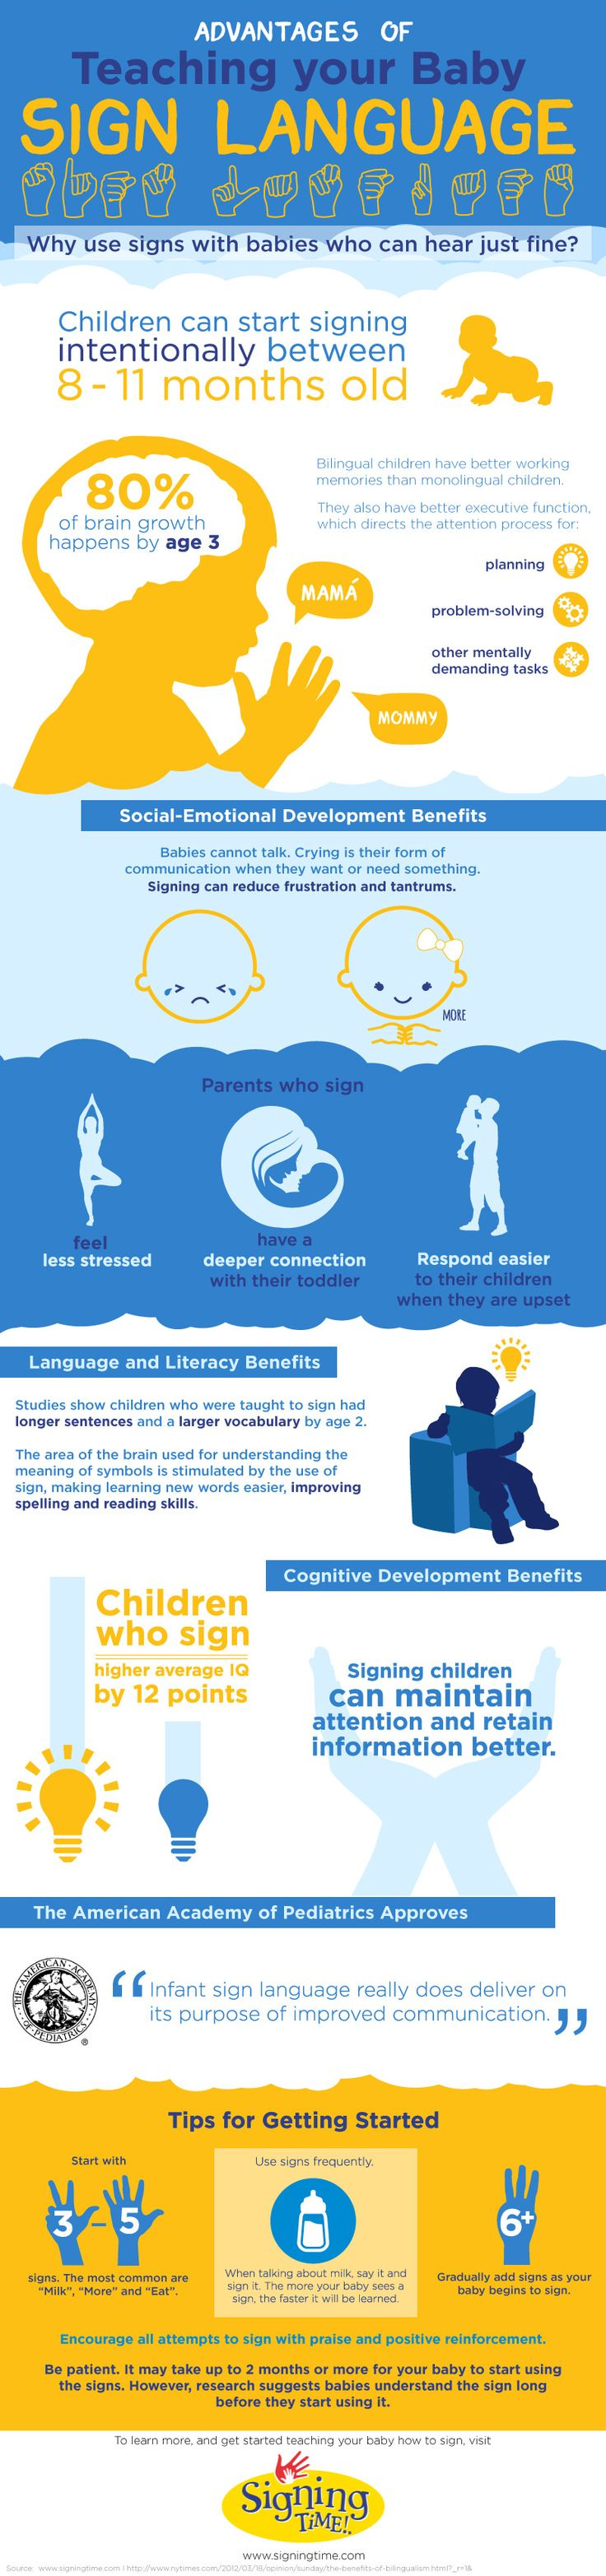 Advantages of teaching baby sign language.